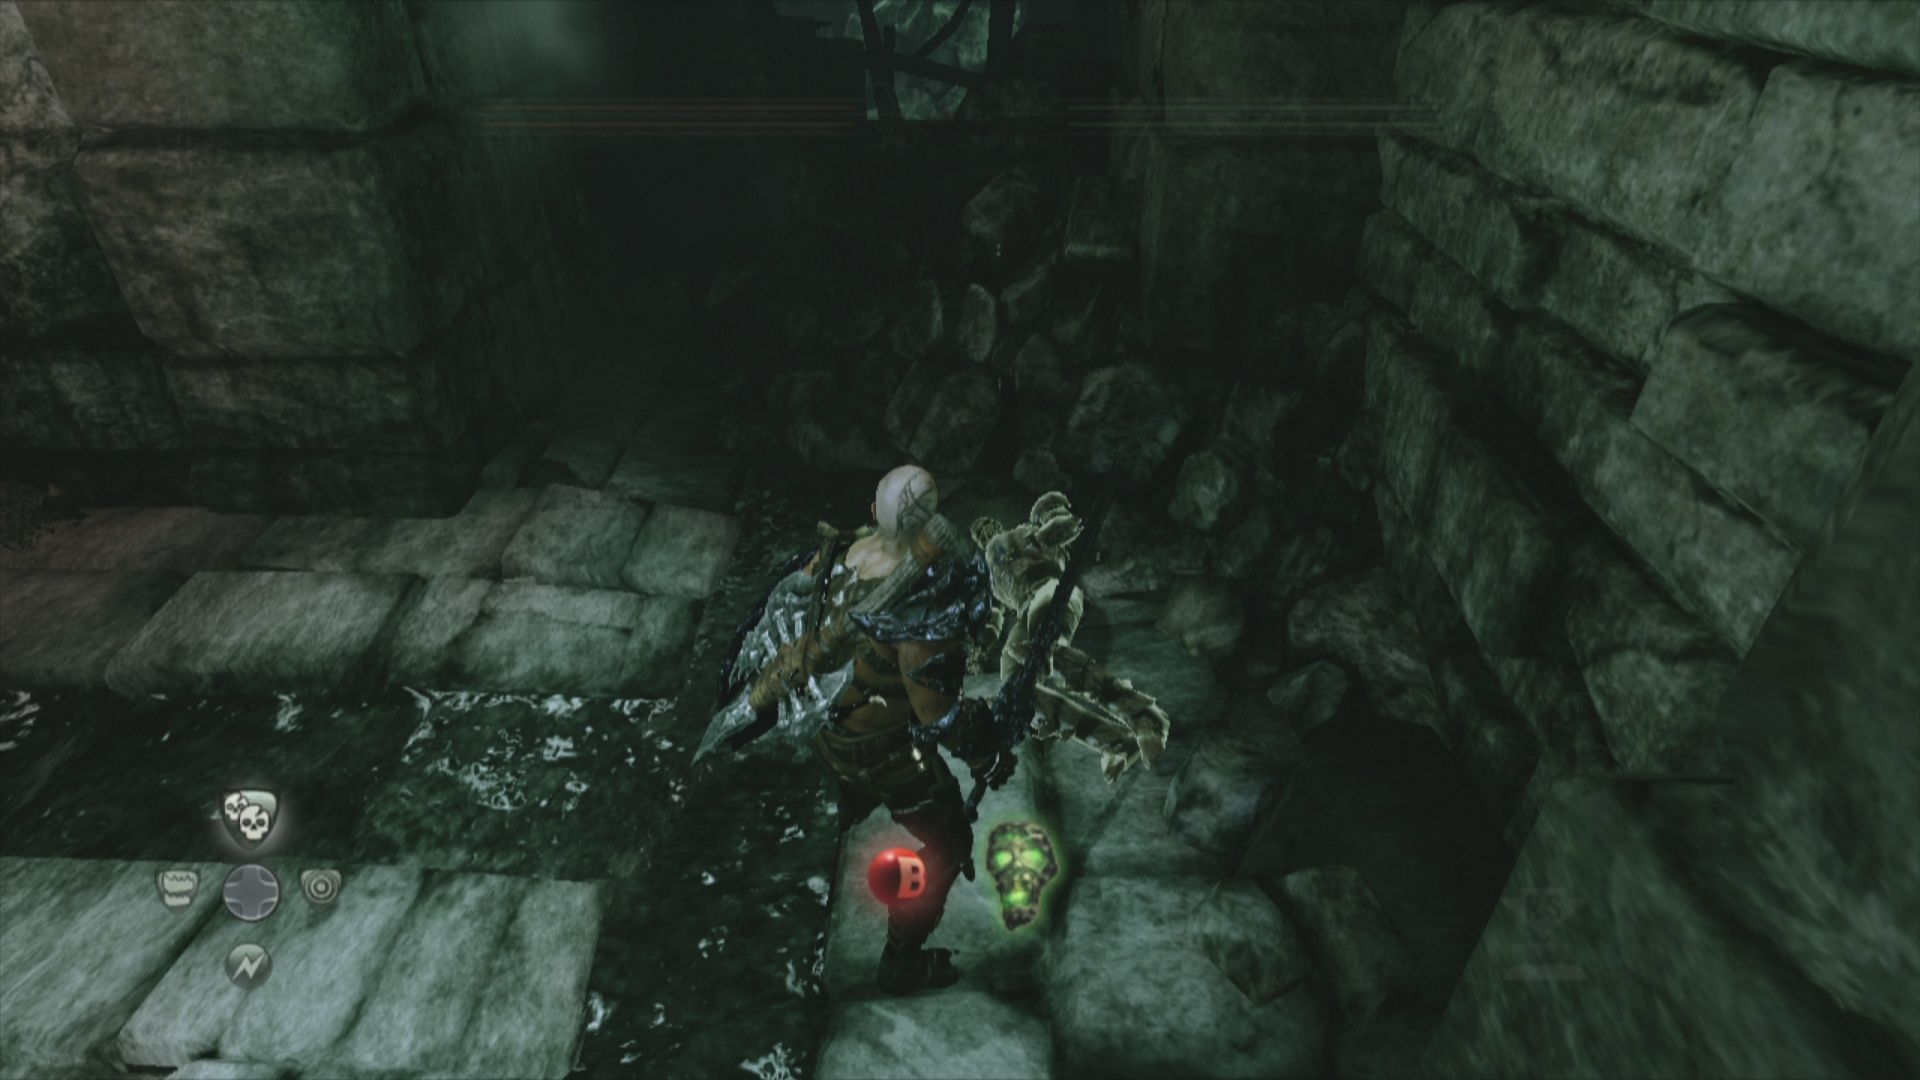 Hunted: The Demon's Forge Xbox 360 One type of collectibles: Dead bodies